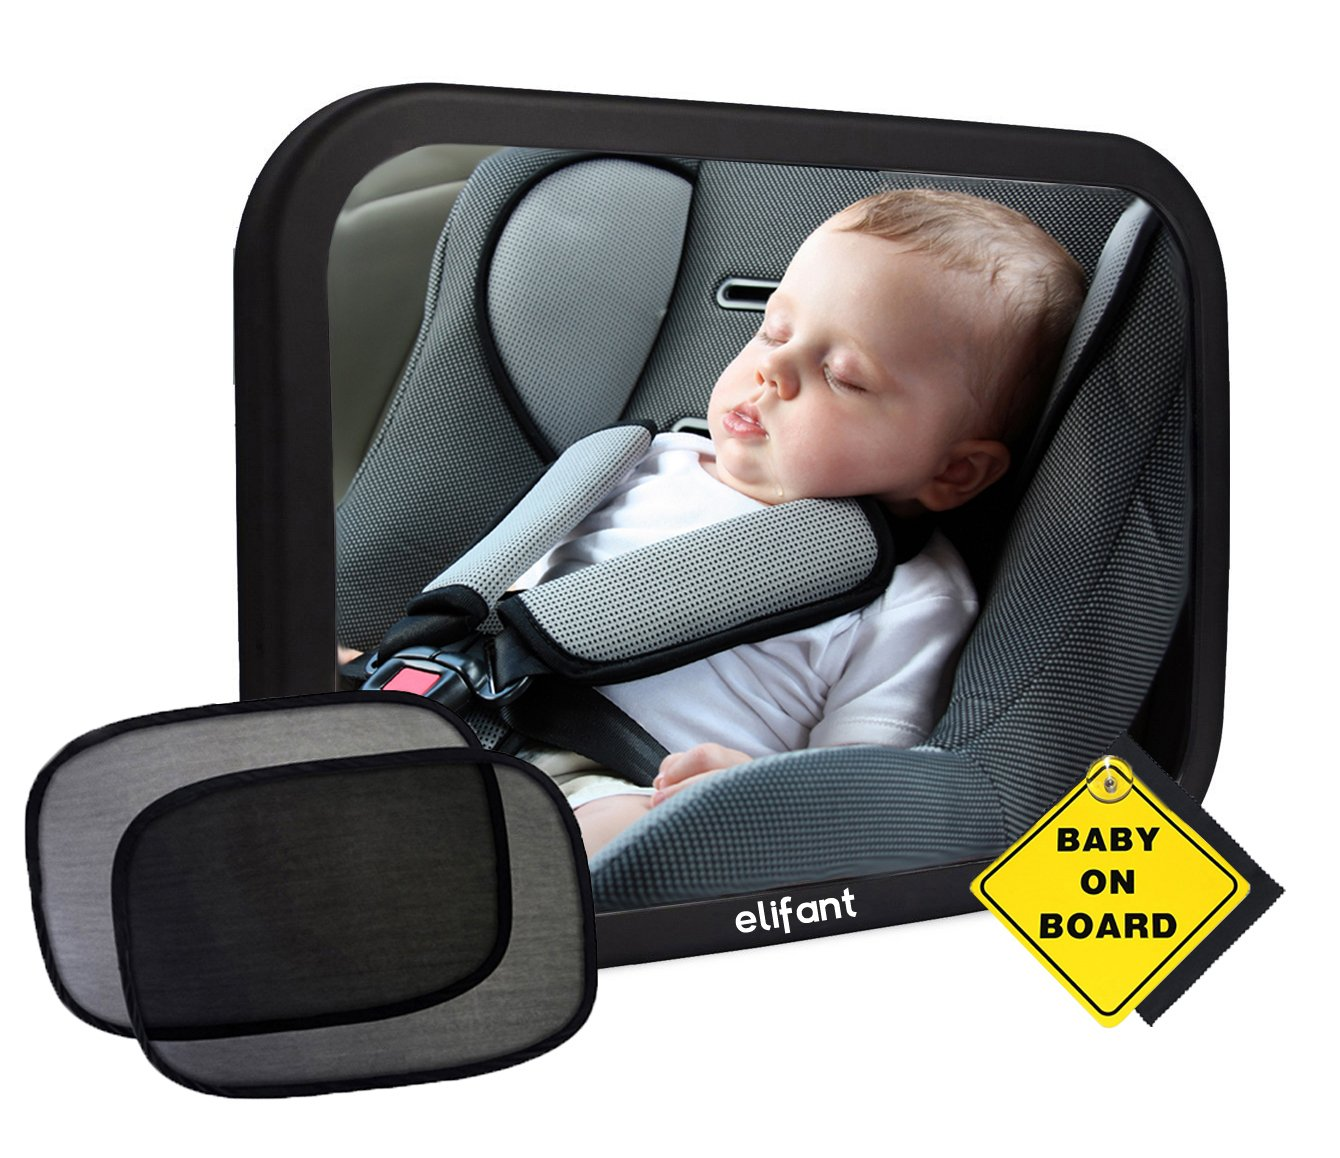 Baby Car Mirror for Back Seat (Fully Assembled) - BONUS Pair of Sunshades, Baby on Board Sign, & Microfiber Cleaning Cloth - LIFETIME WARRANTY by elifant baby backseat car mirror